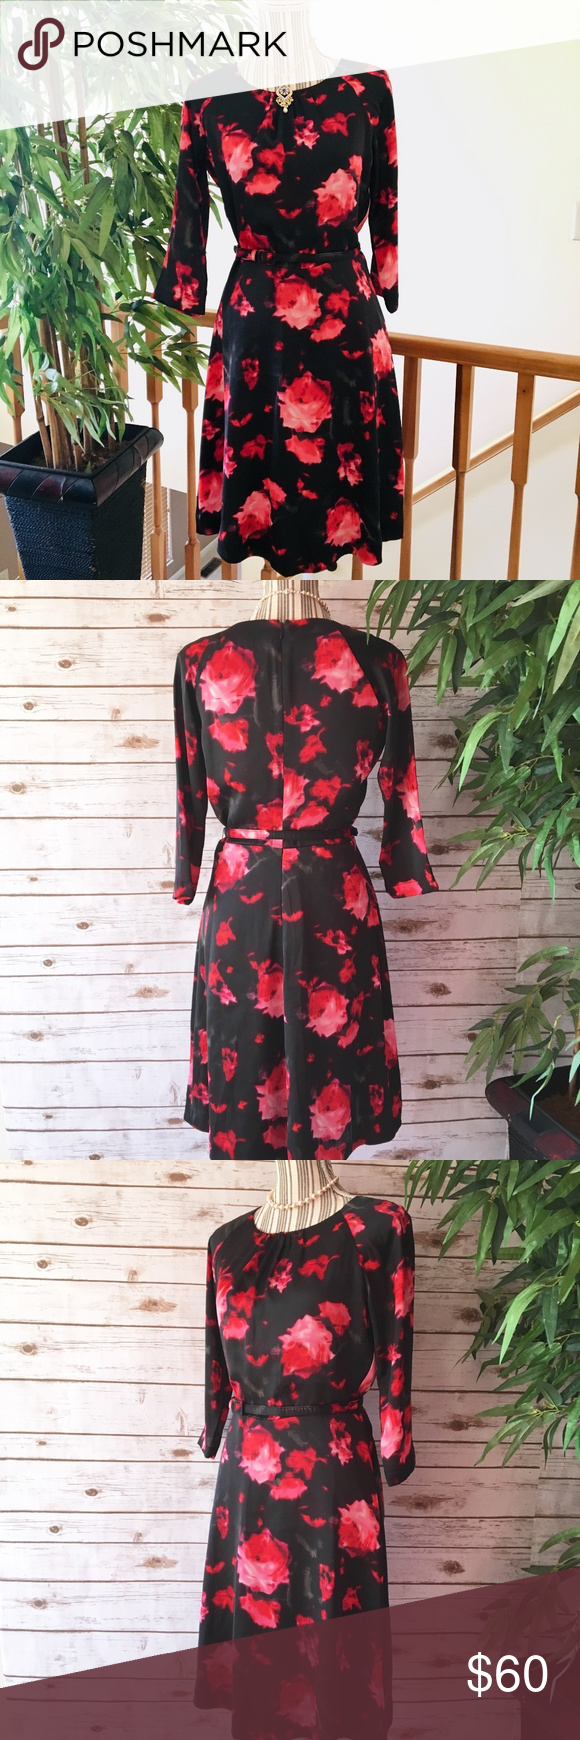 Clements Ribeiro Black Floral Dress Size Small Floral Dress Black Dresses Floral Dress [ 1740 x 580 Pixel ]